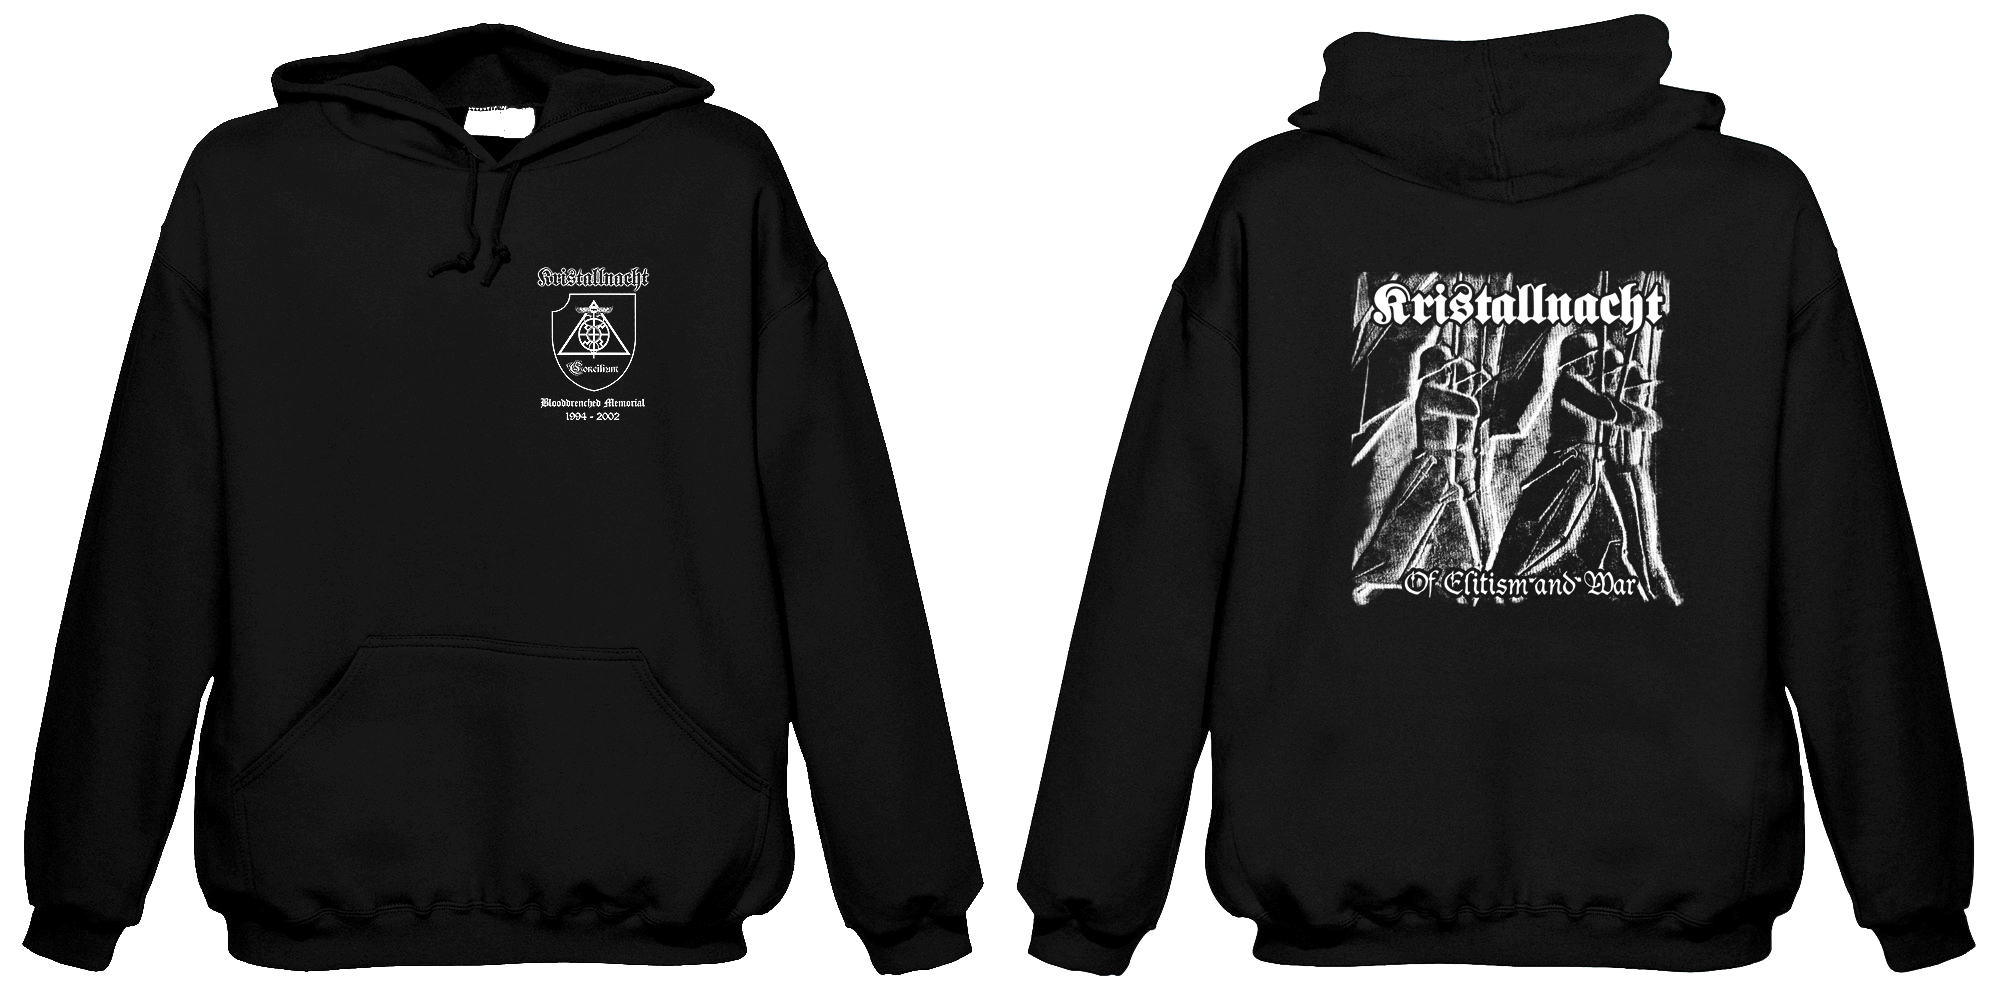 Kristallnacht-Of Elitism And War  (Hooded Sweatshirt)